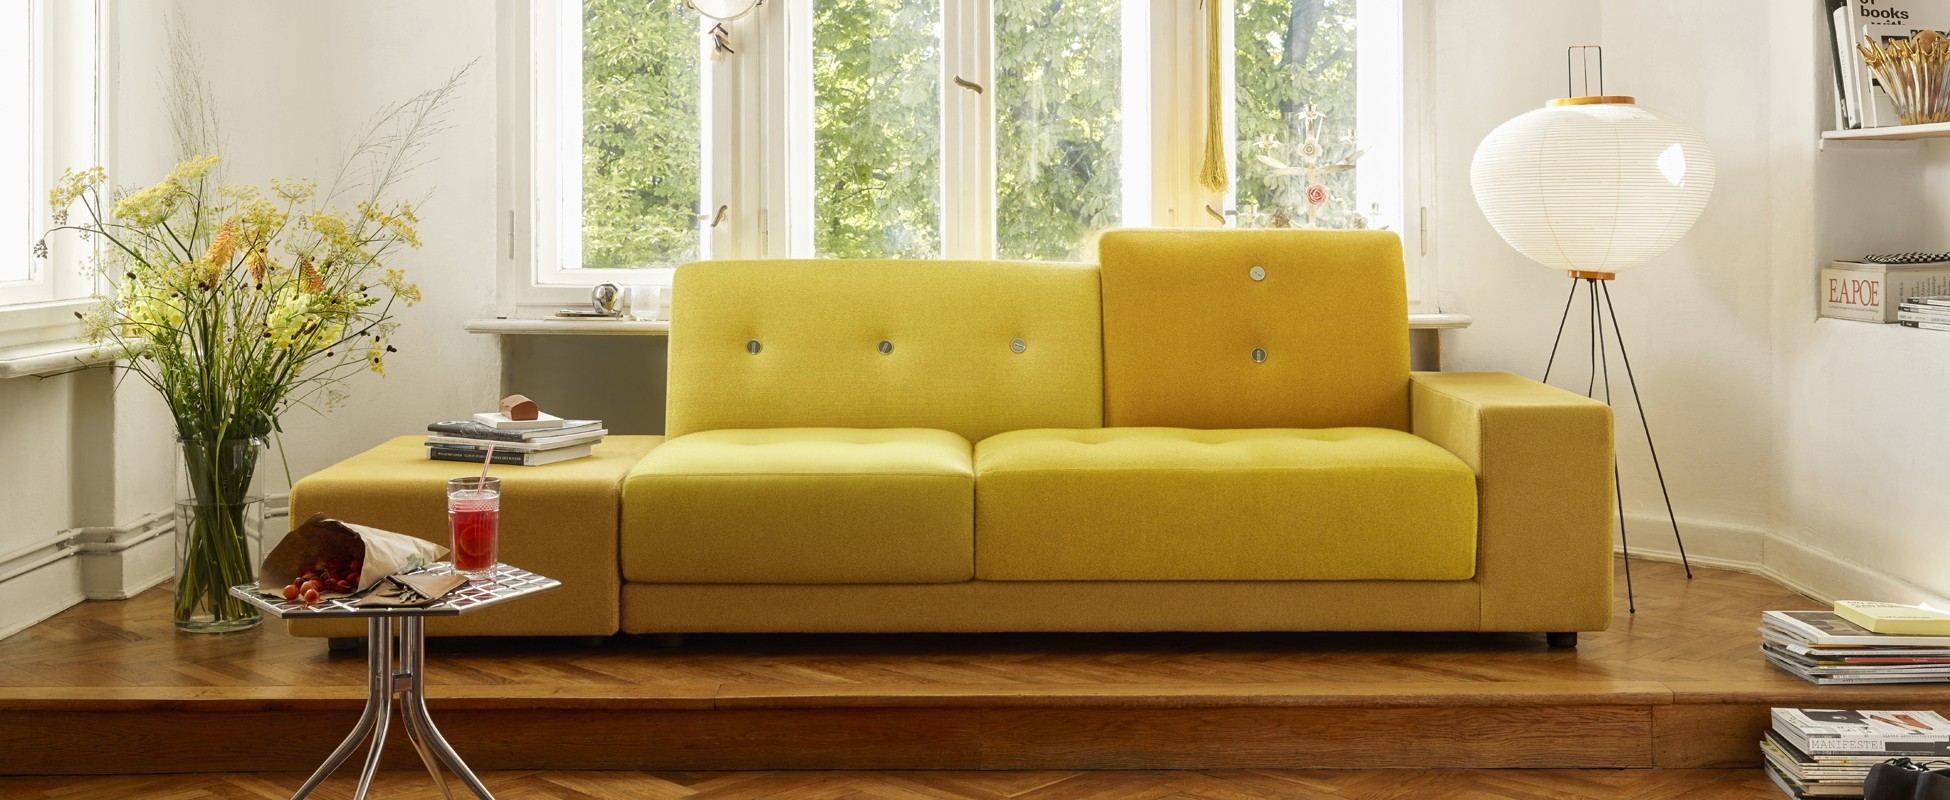 vitra polder sofa in berlin by steidten+